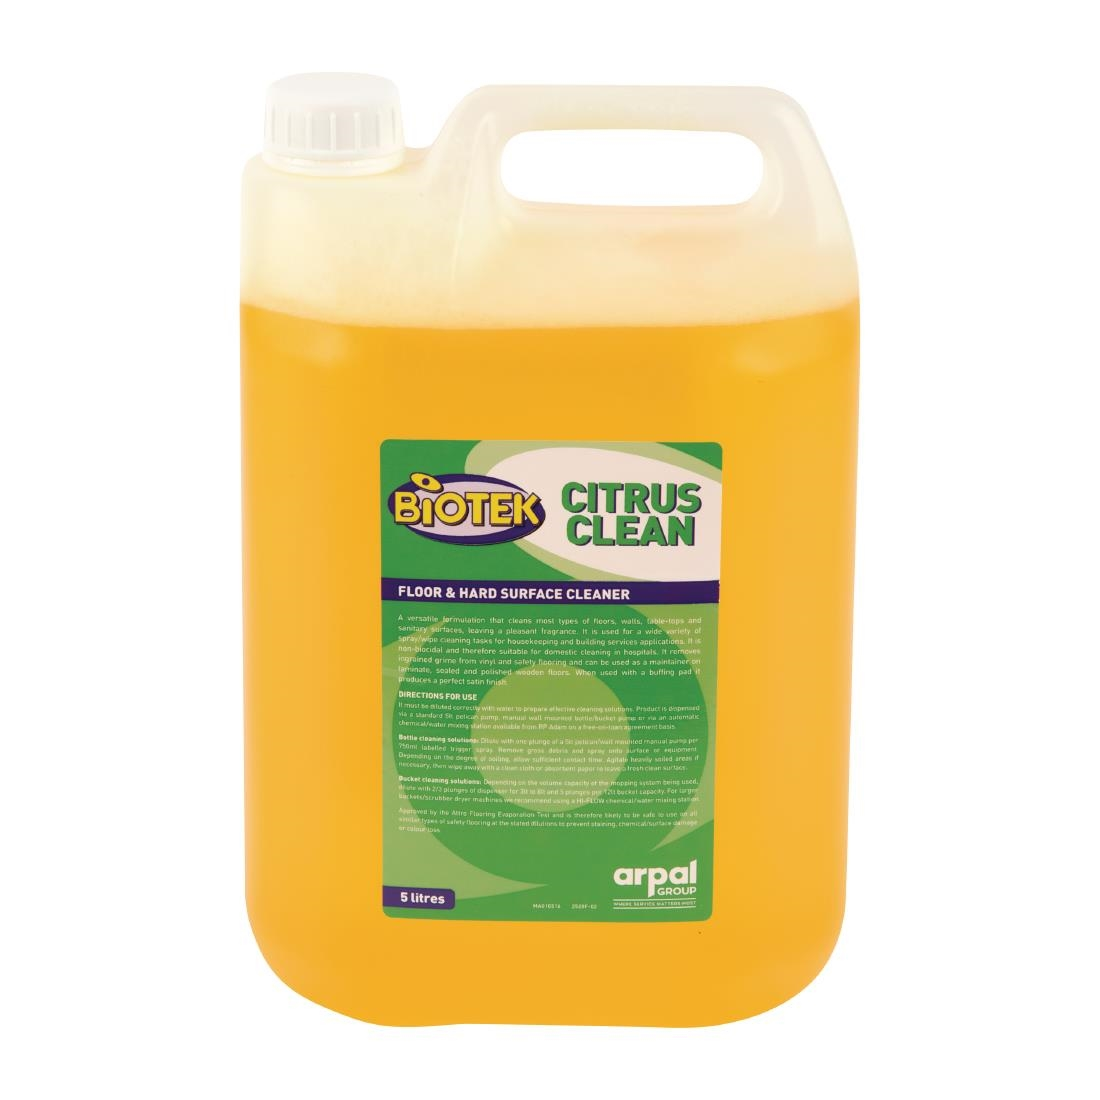 Image of Biotek Citrus Floor and Hard Surface Cleaner Concentrate 5Ltr (2 Pack) Pack of 2